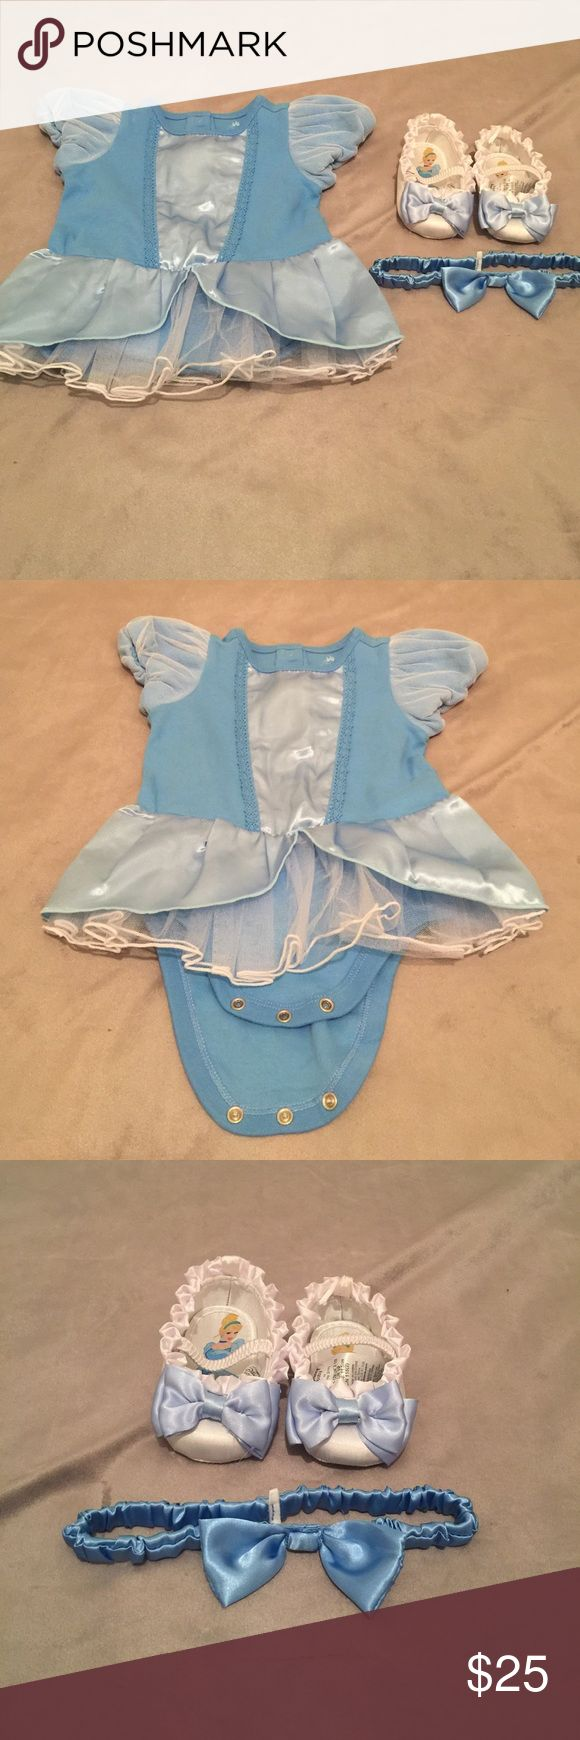 Baby, Cinderella costume. Official Disney baby. Baby costume, complete with shoes and headband accessory. 100% organic cotton. 100% polyester. New! Worn only for a picture (as shown). Great for a Cinderella theme party, Disney princesses party, Halloween costume, or any day to play dress up with your princess! Makes a great gift! Costumes Halloween